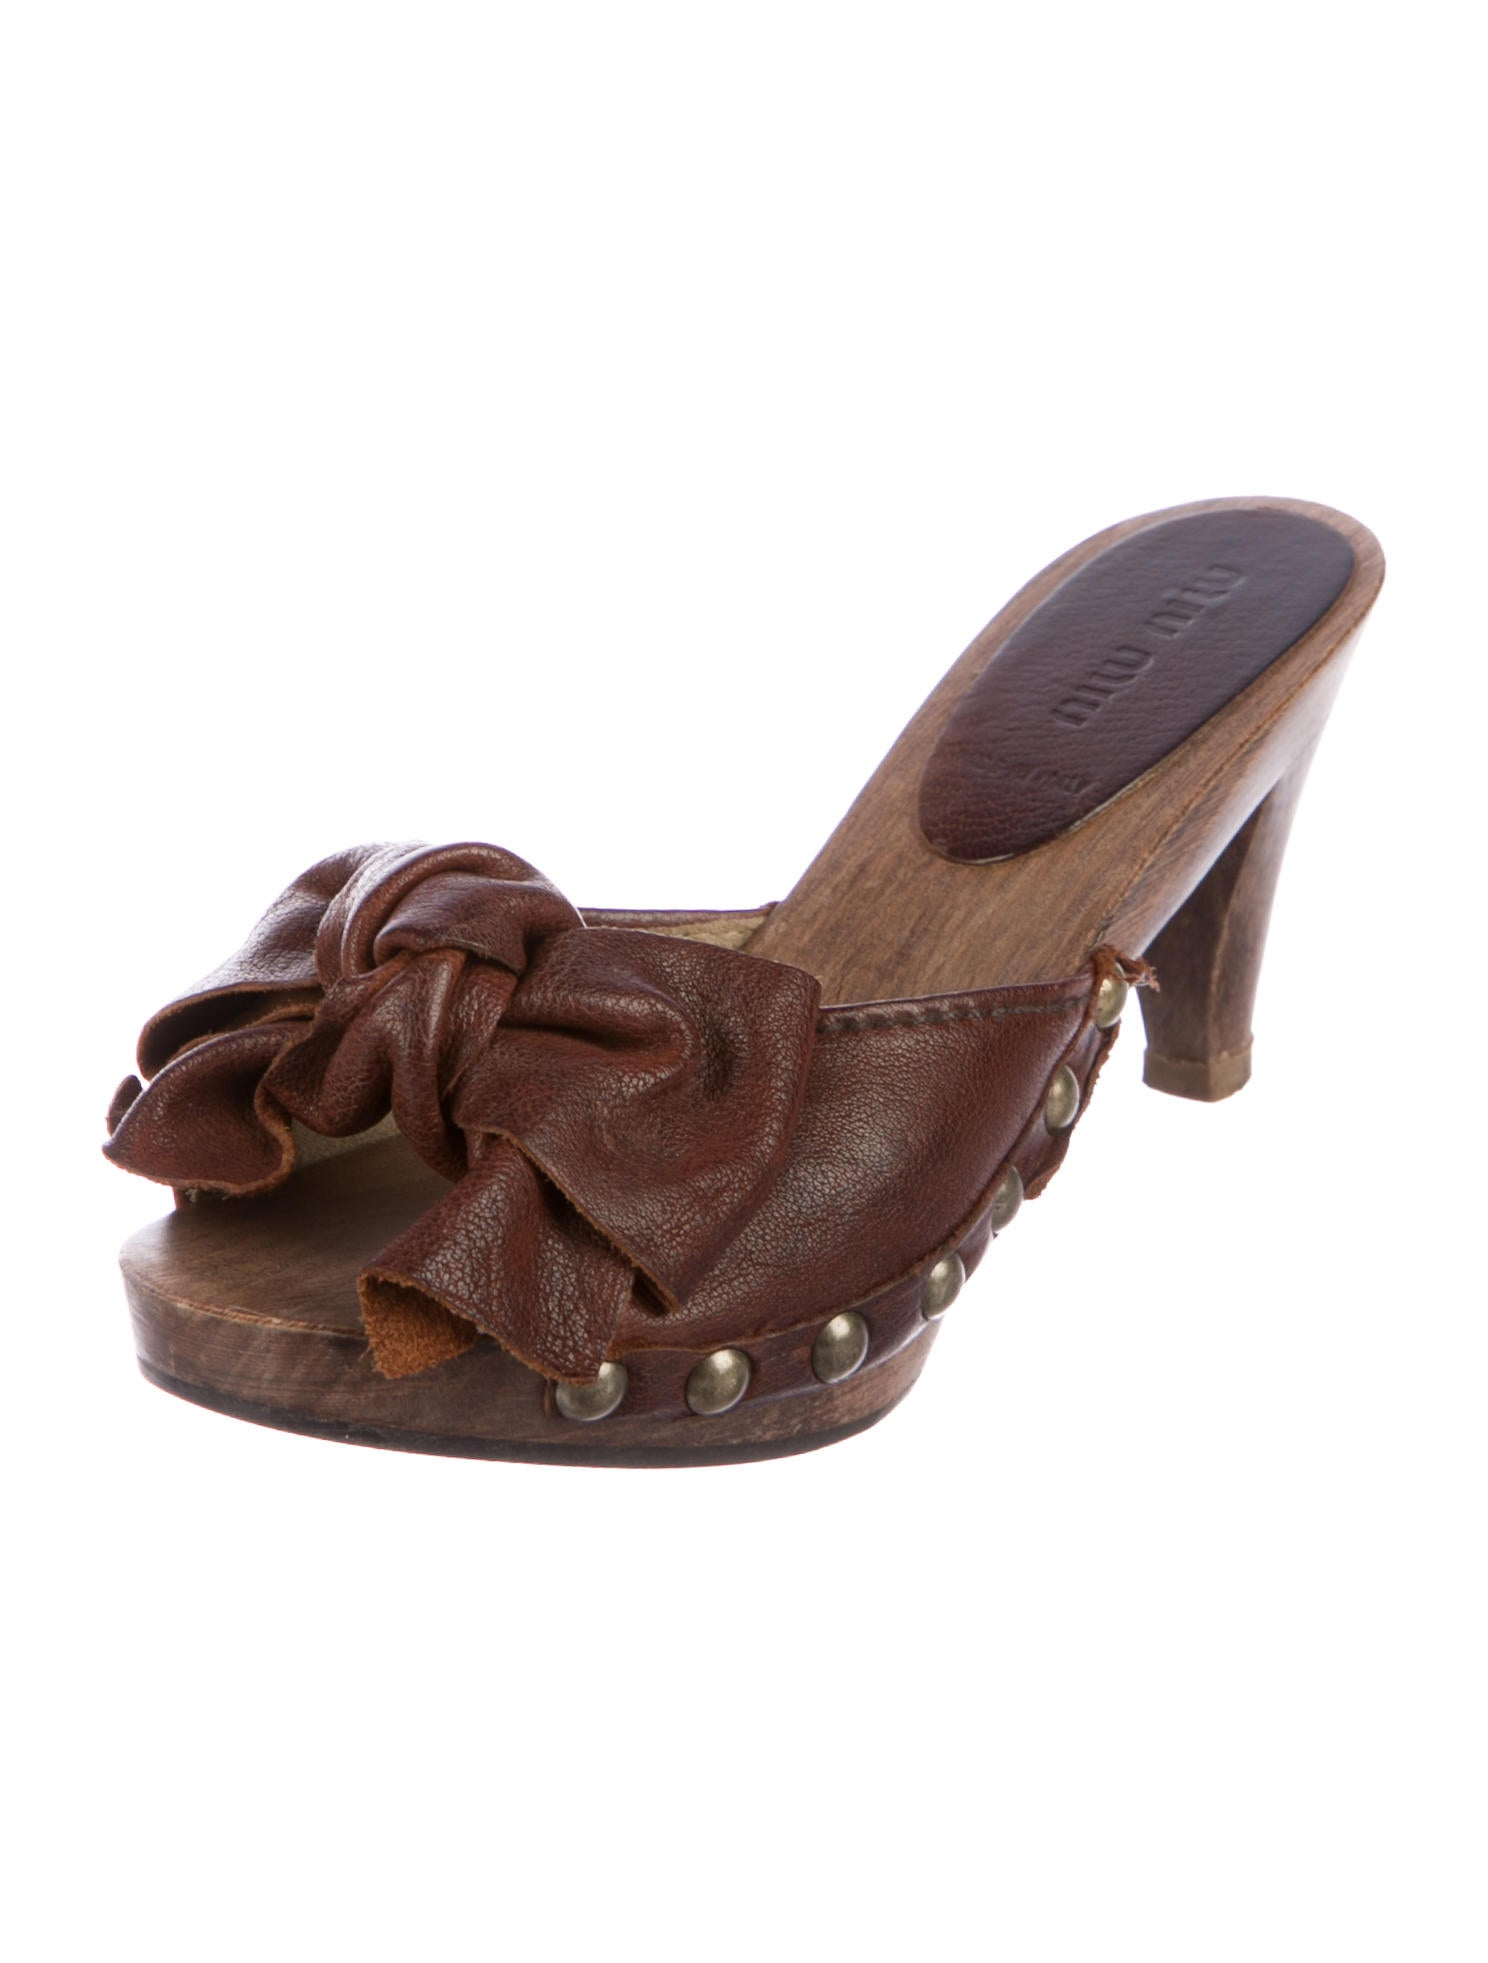 Miu Miu Leather Clog Mules w/ Bows explore online buy cheap the cheapest bsJ8Y